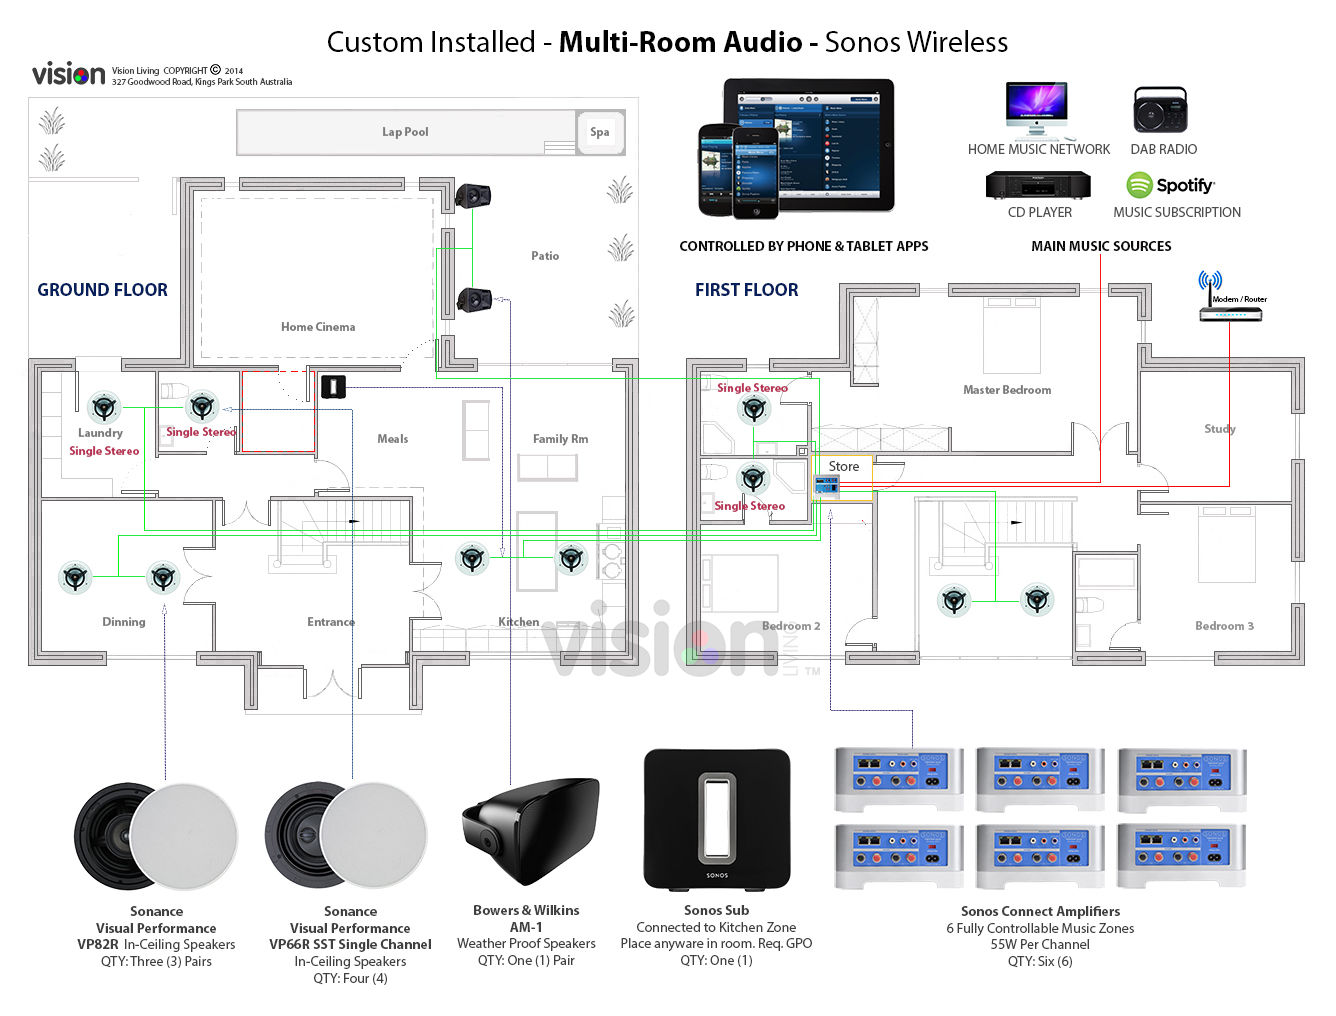 multi zone home speaker diagram 12 12 malawi24 de \u2022multi room stereo wiring diagram yorkromanfestival co uk u2022 rh yorkromanfestival co uk home speaker design